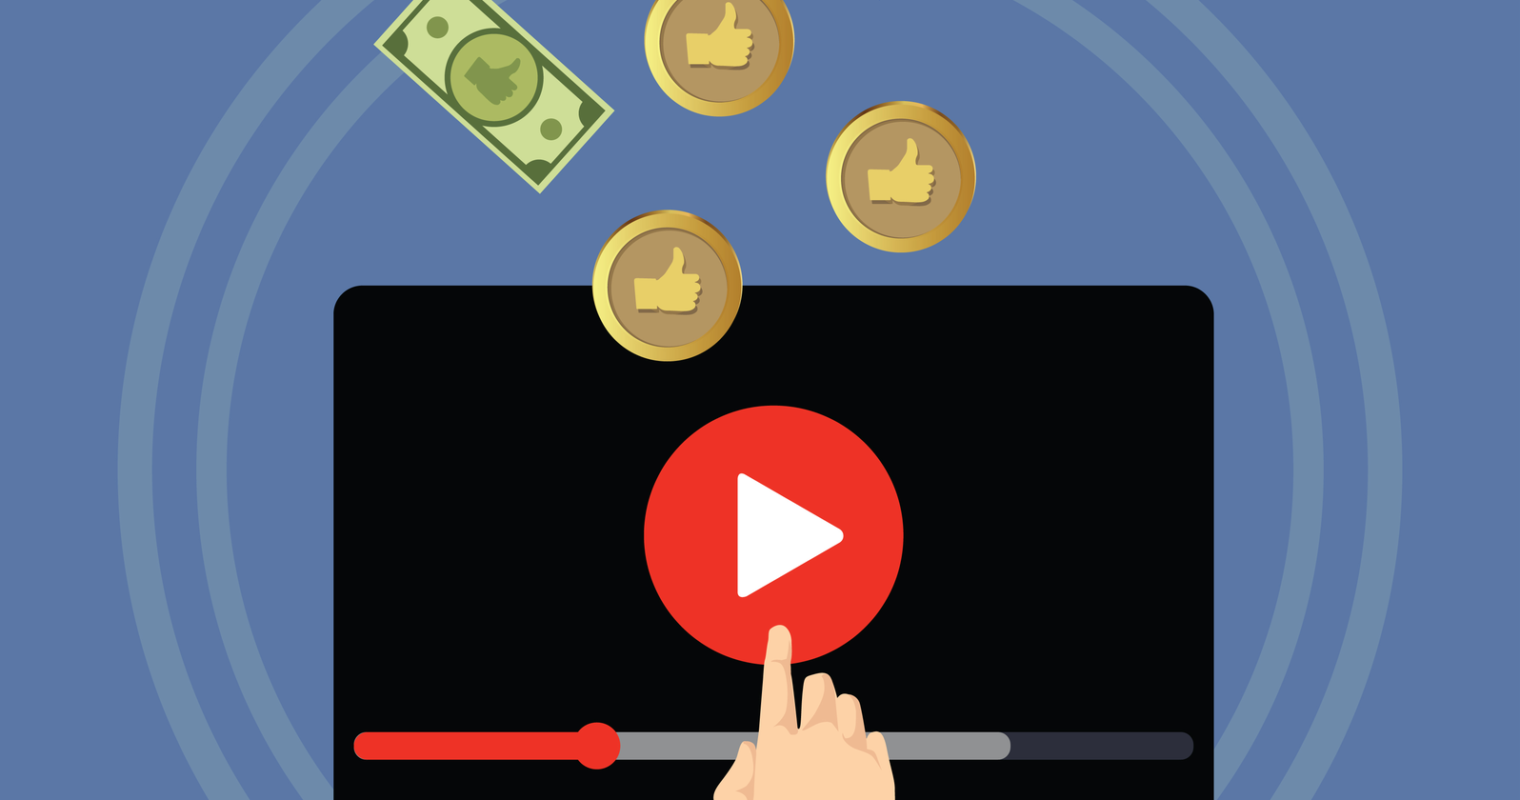 YouTube Introduces New Ways for Channels to Make Money